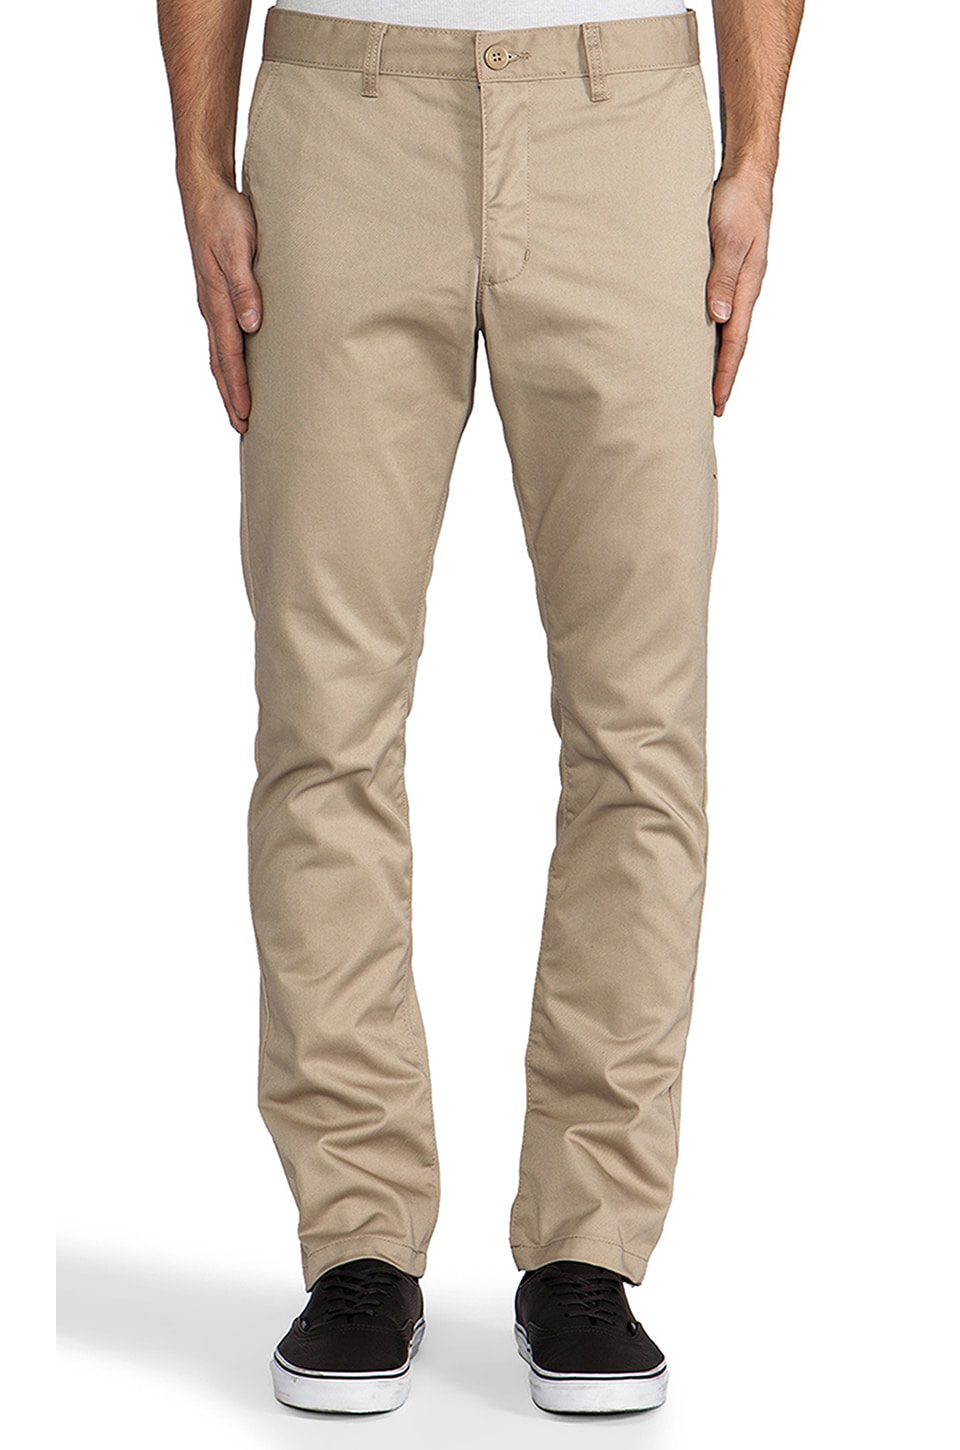 RVCA Pant in Dark Khaki